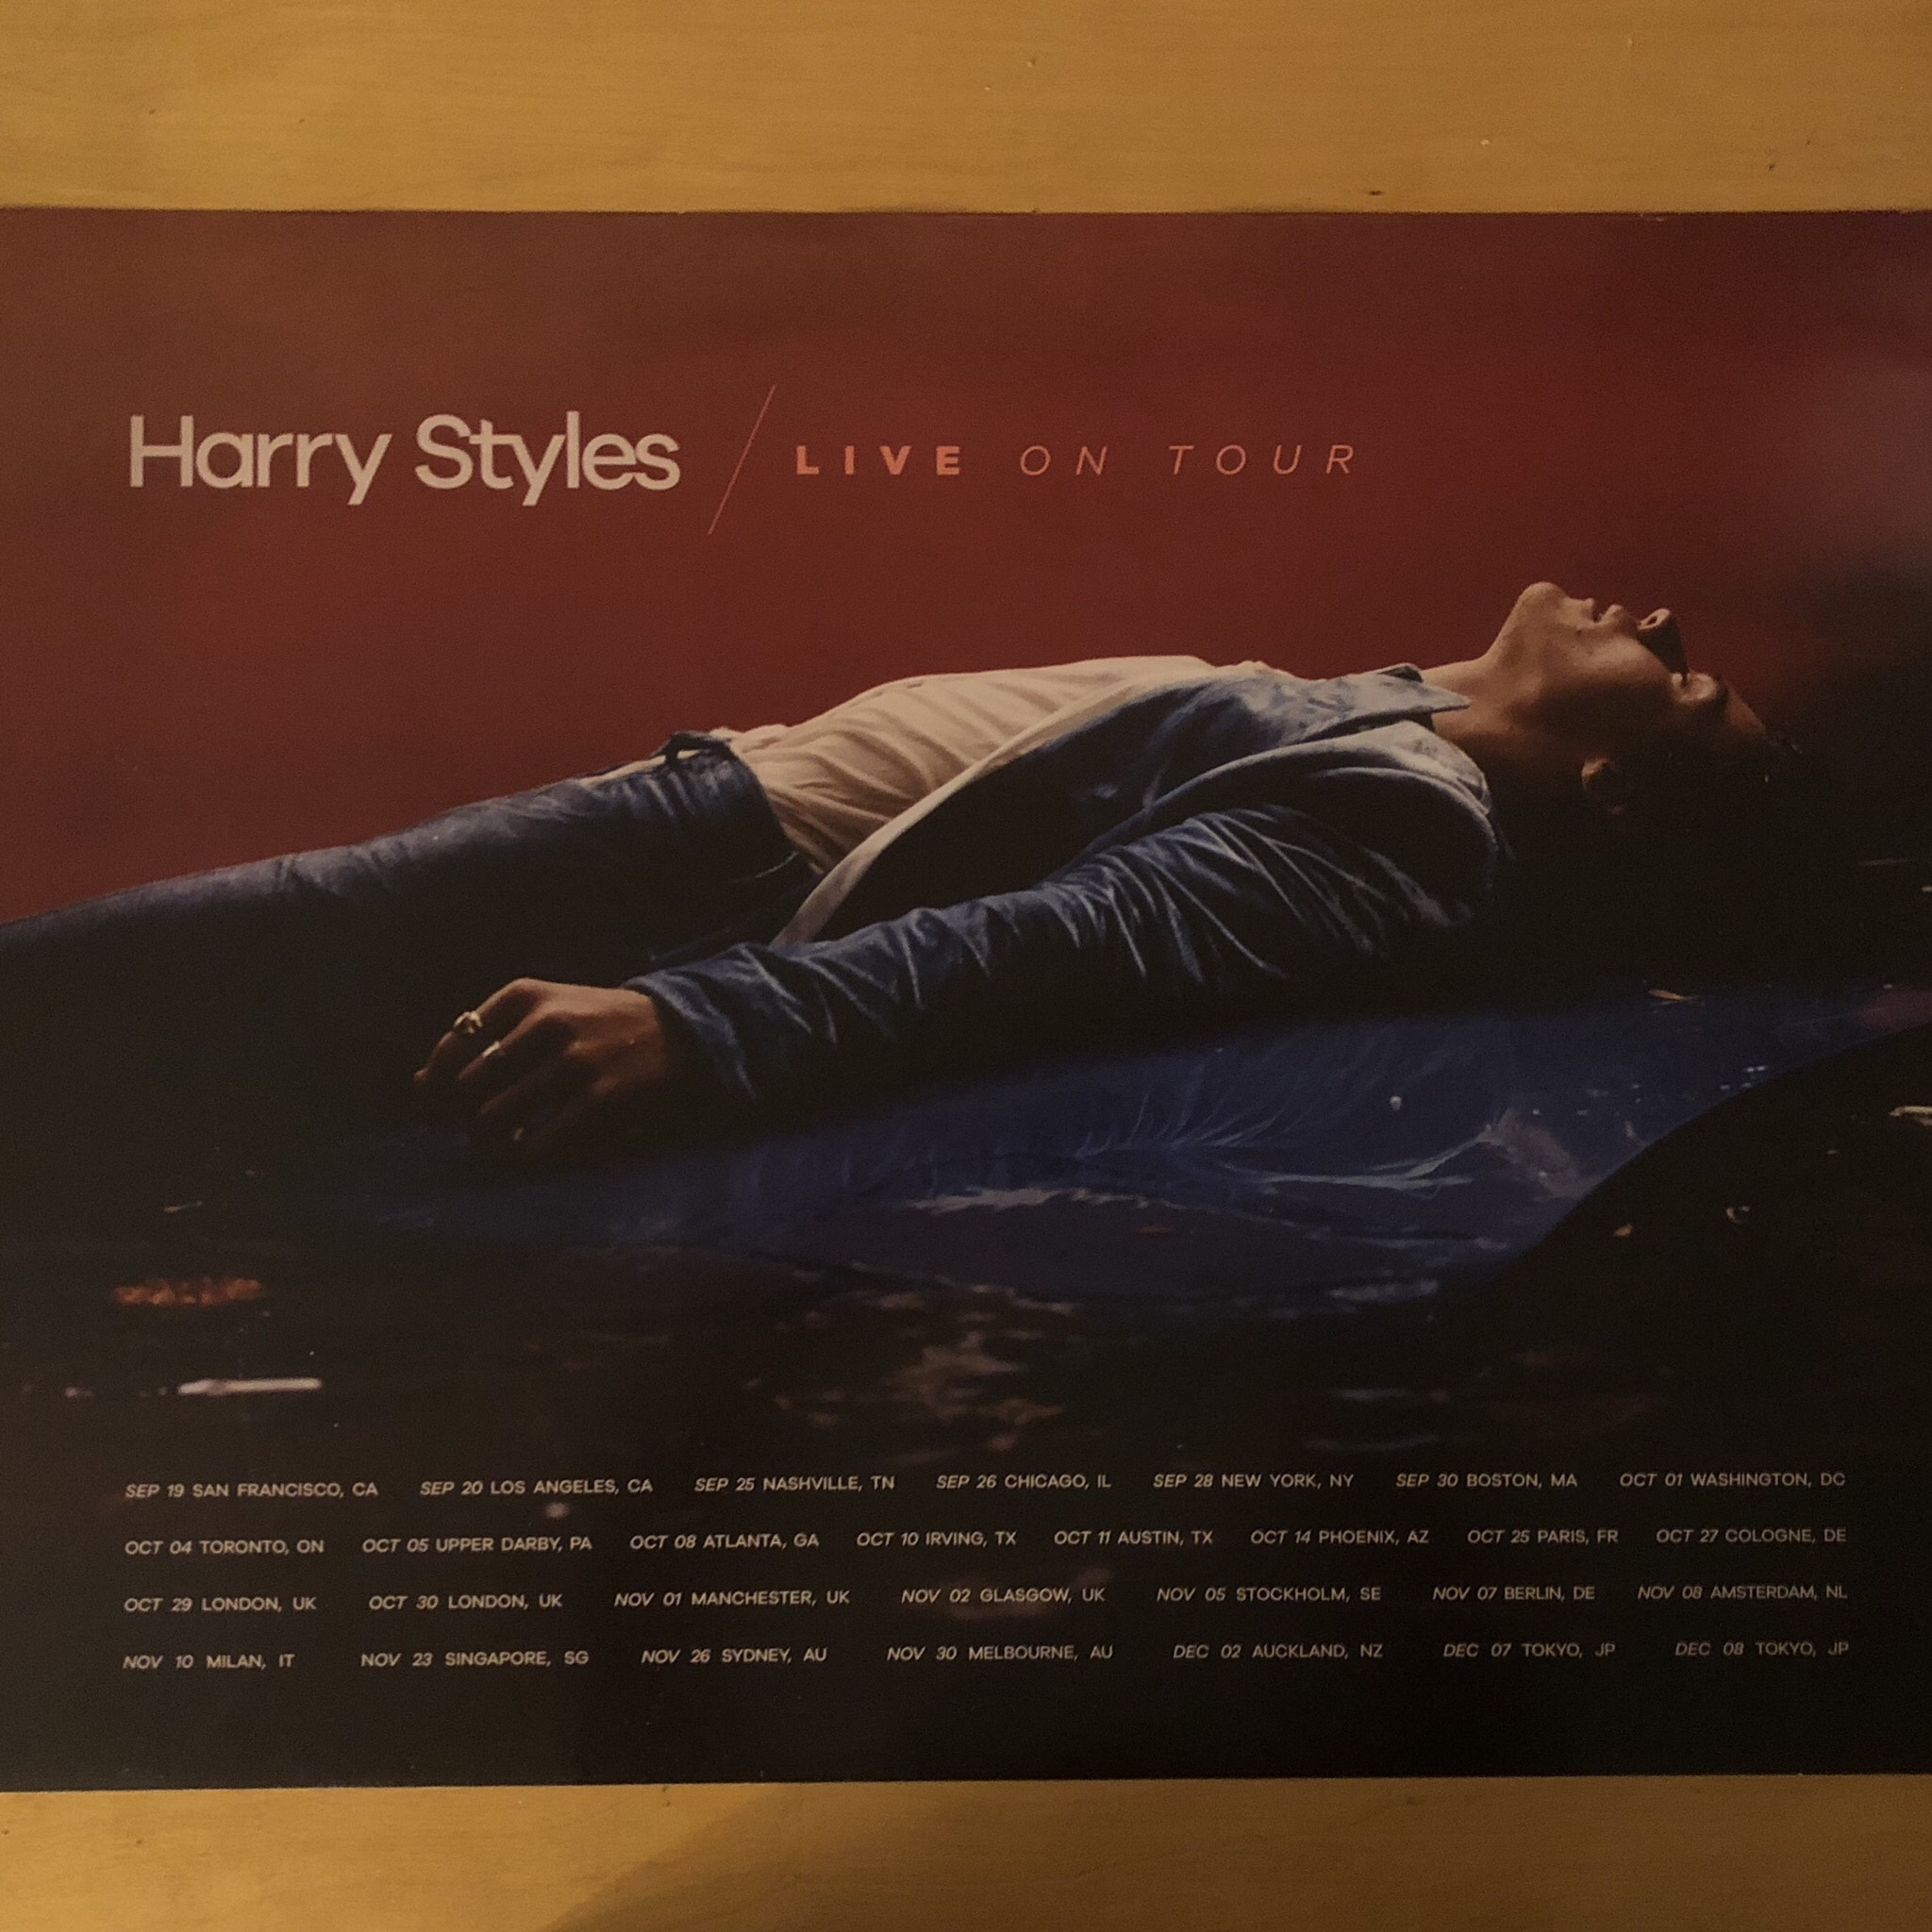 harry styles fall winter 2017 tour poster in perfect